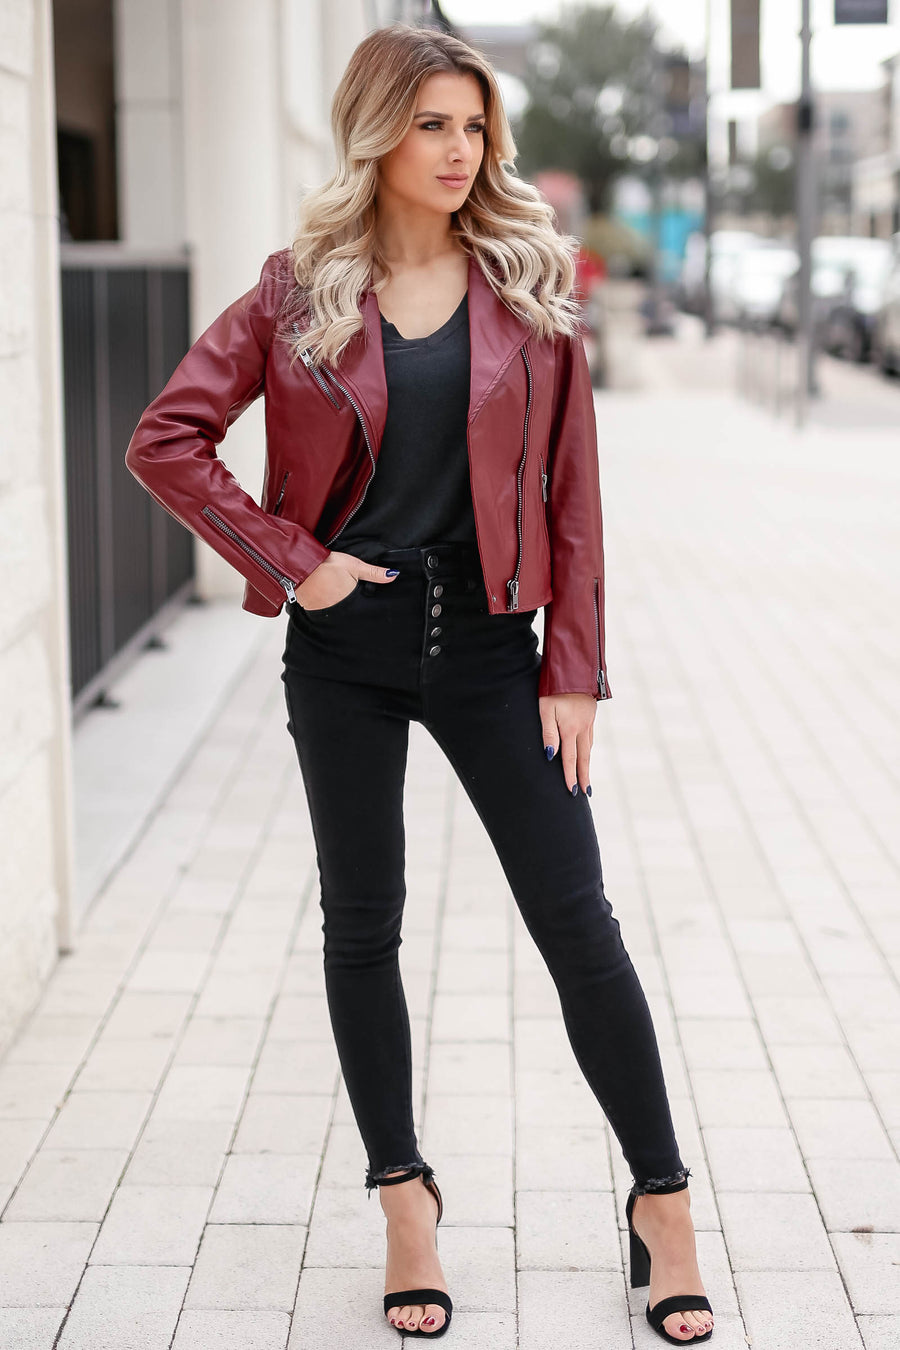 CBRAND Limitless Vegan Leather Jacket - Wine closet candy exclusive designer trendy womens Moto jacket 1